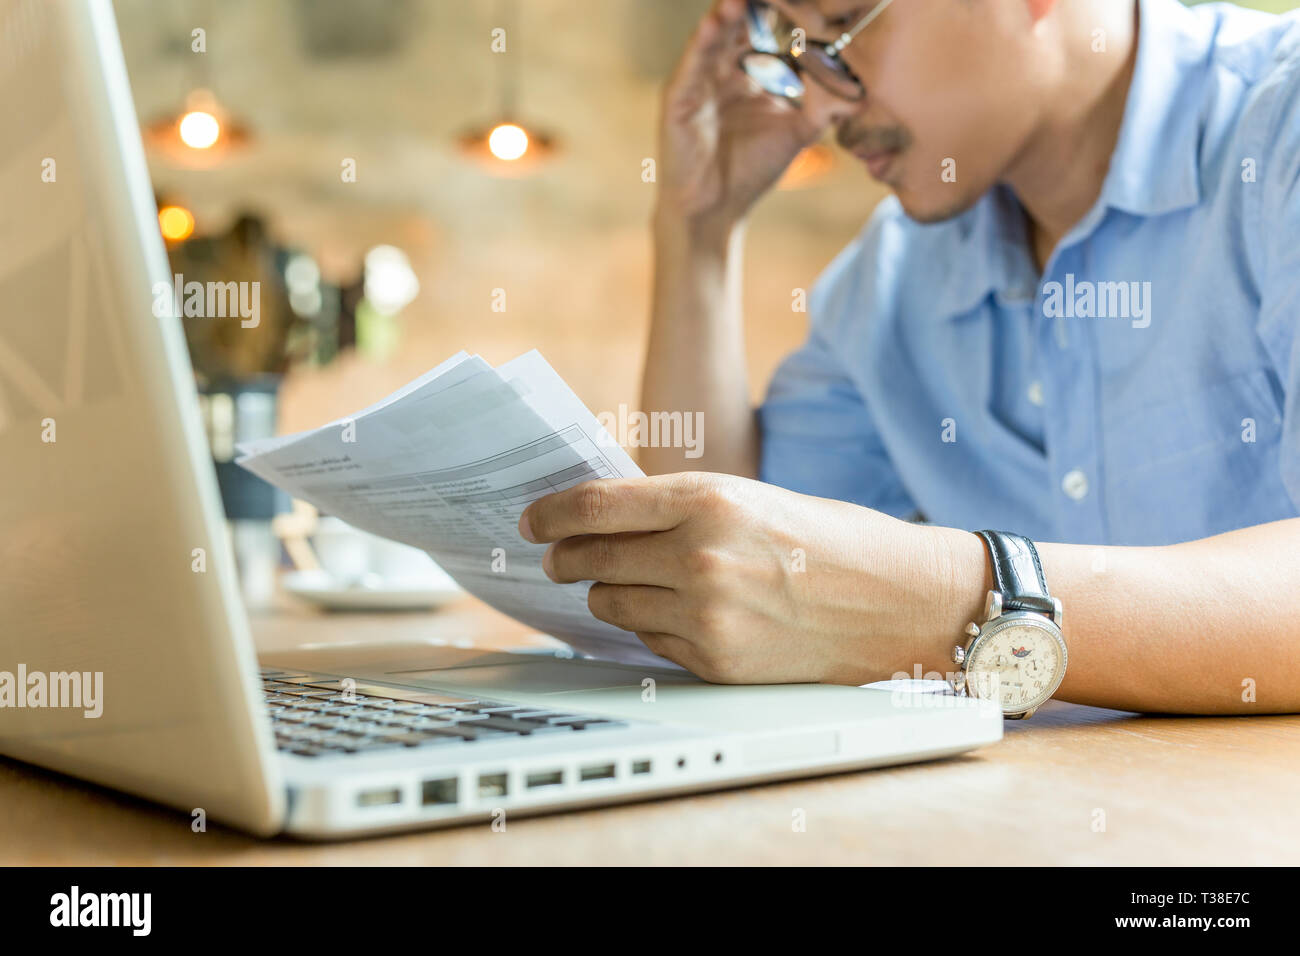 Worries businessman hands on his head looking at document with laptop on table. - Stock Image